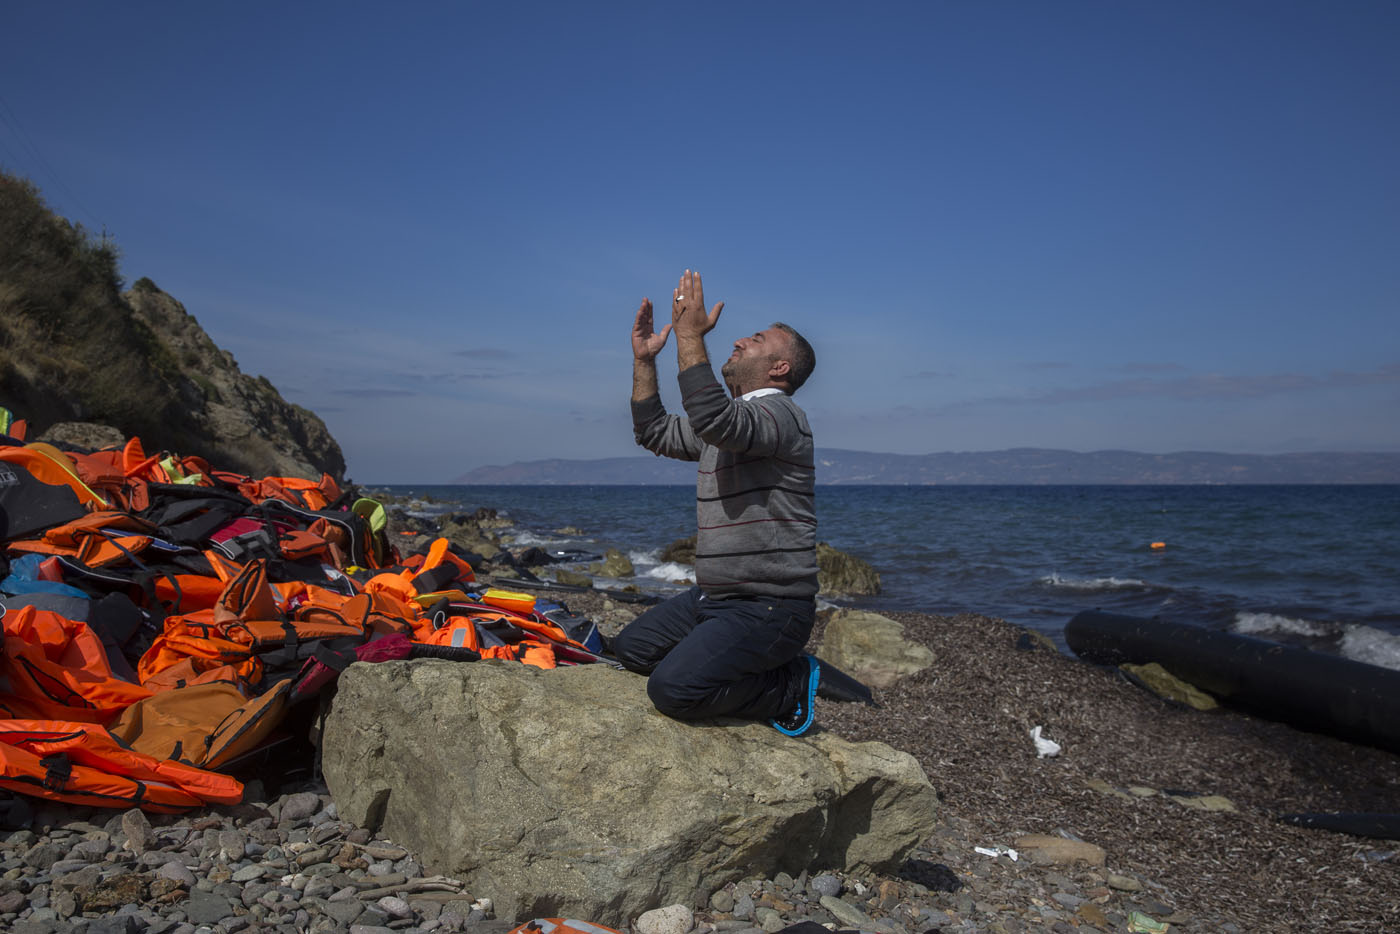 Refugee prayers, Cyprus Independence Day, campus shooting in Oregon | Oct. 1